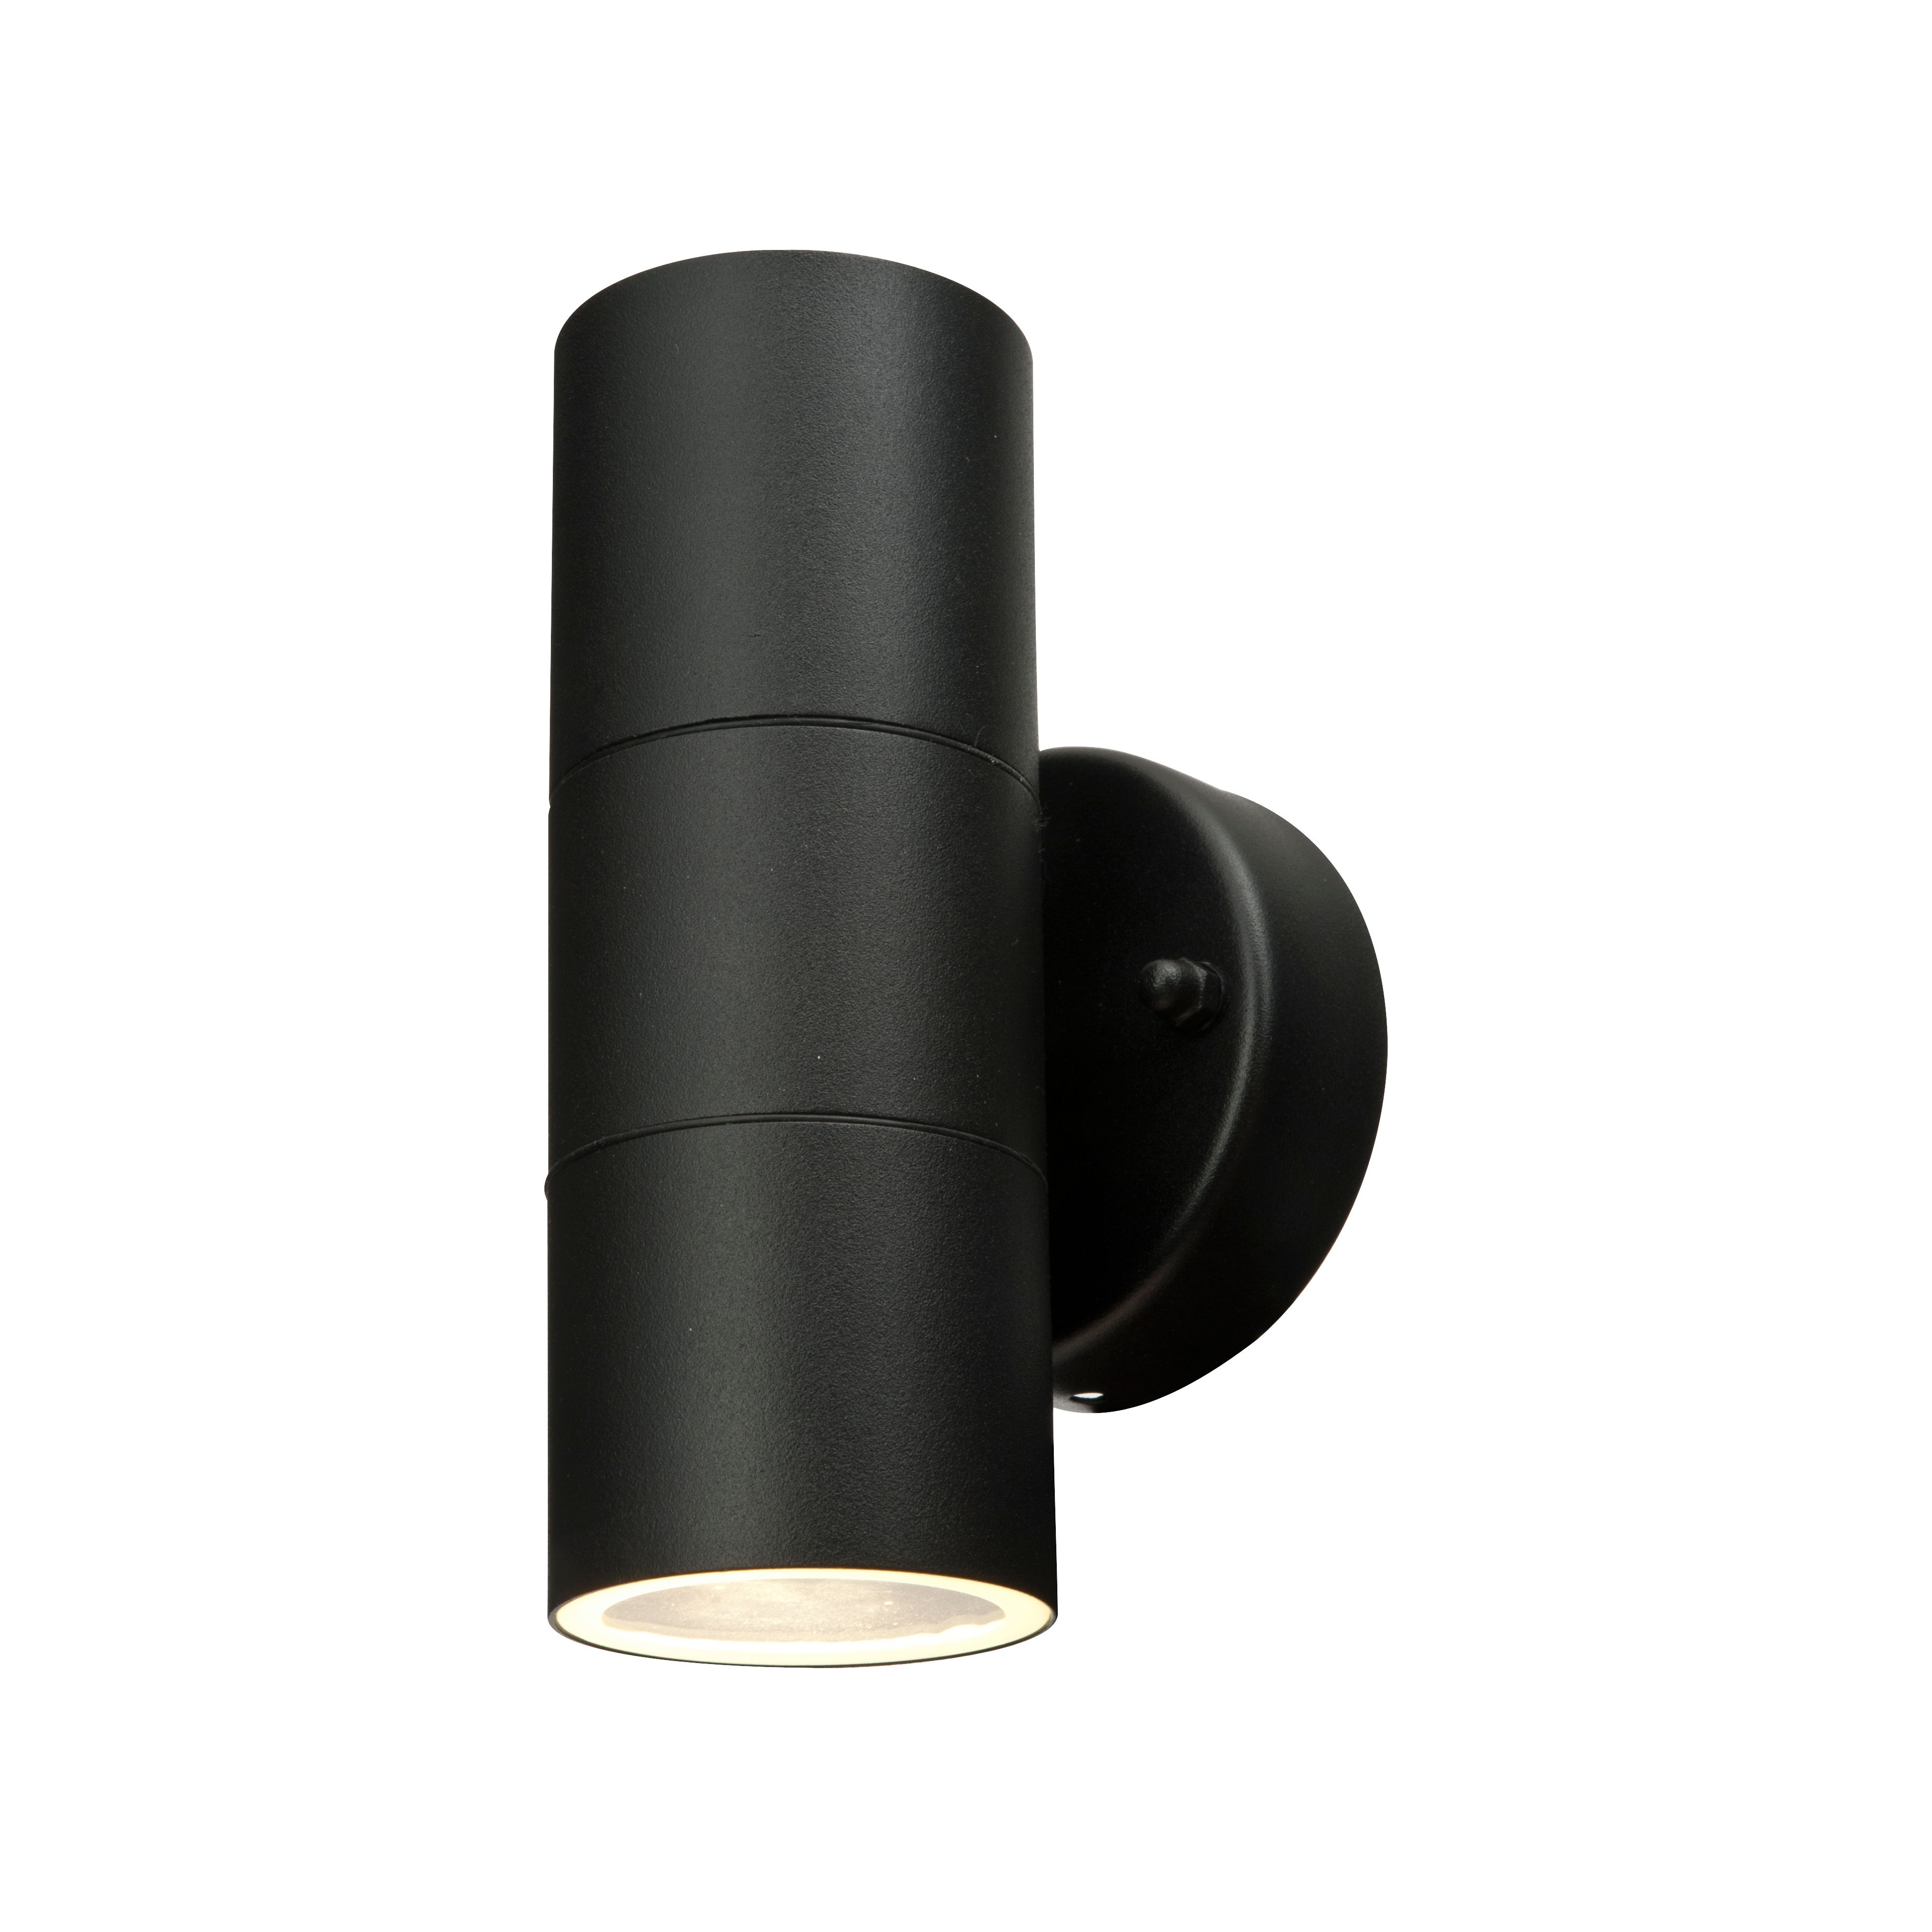 Latest Blooma Somnus Black Mains Powered External Up & Down Wall Light Within Outdoor Wall Lighting At B&q (View 11 of 20)